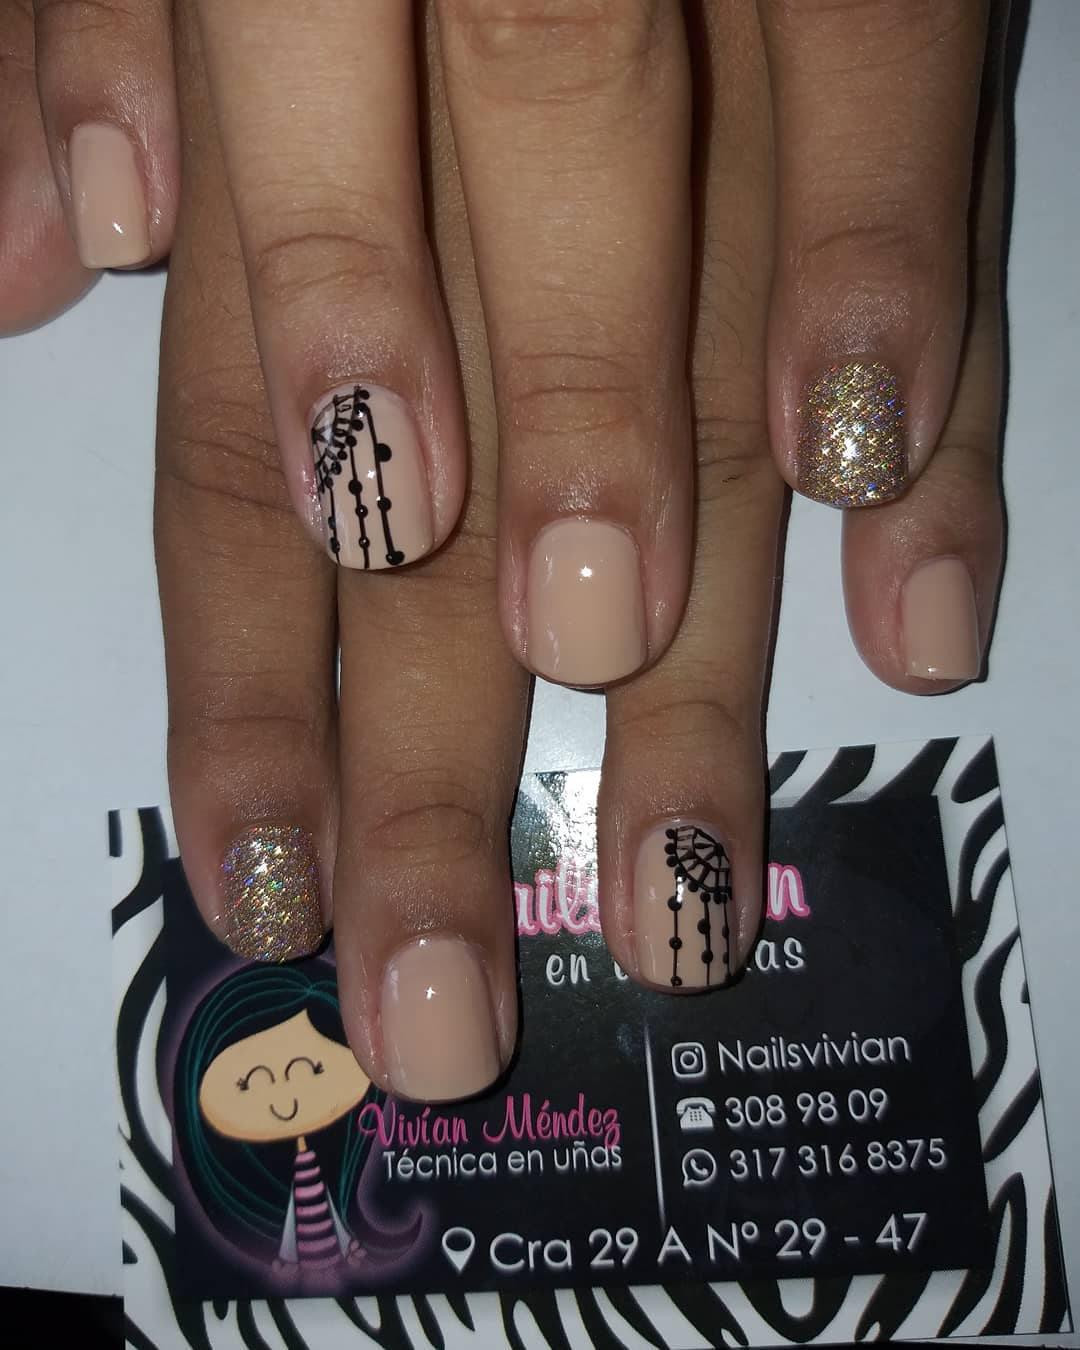 #nailsvivian # nails4today #nailsgel #nailselfie #nailsbaby #nailsmoda #nailsarte ...